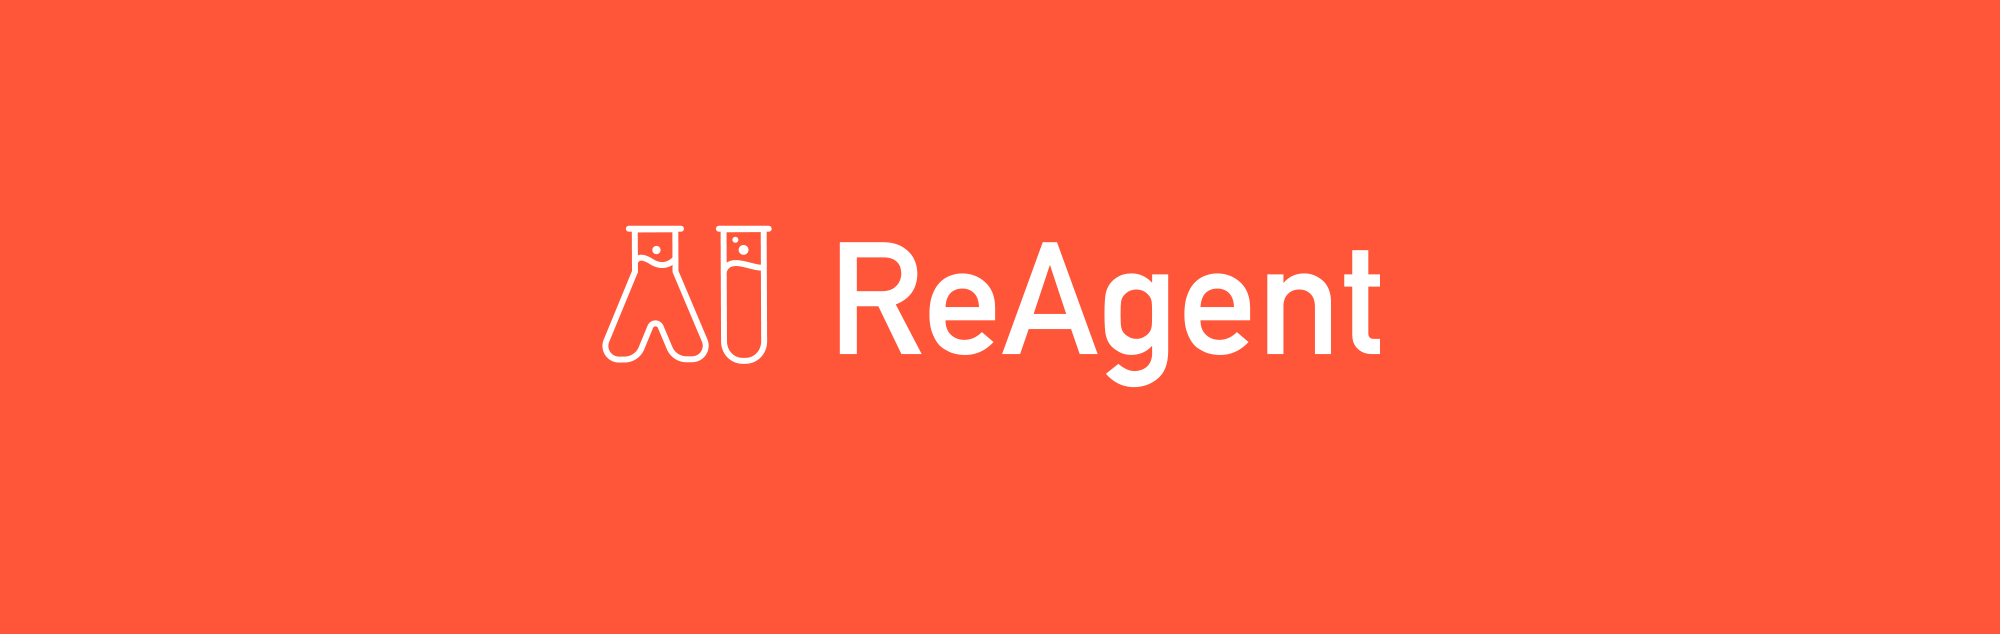 Reinforcement Learning Environment Platforms - ReAgent